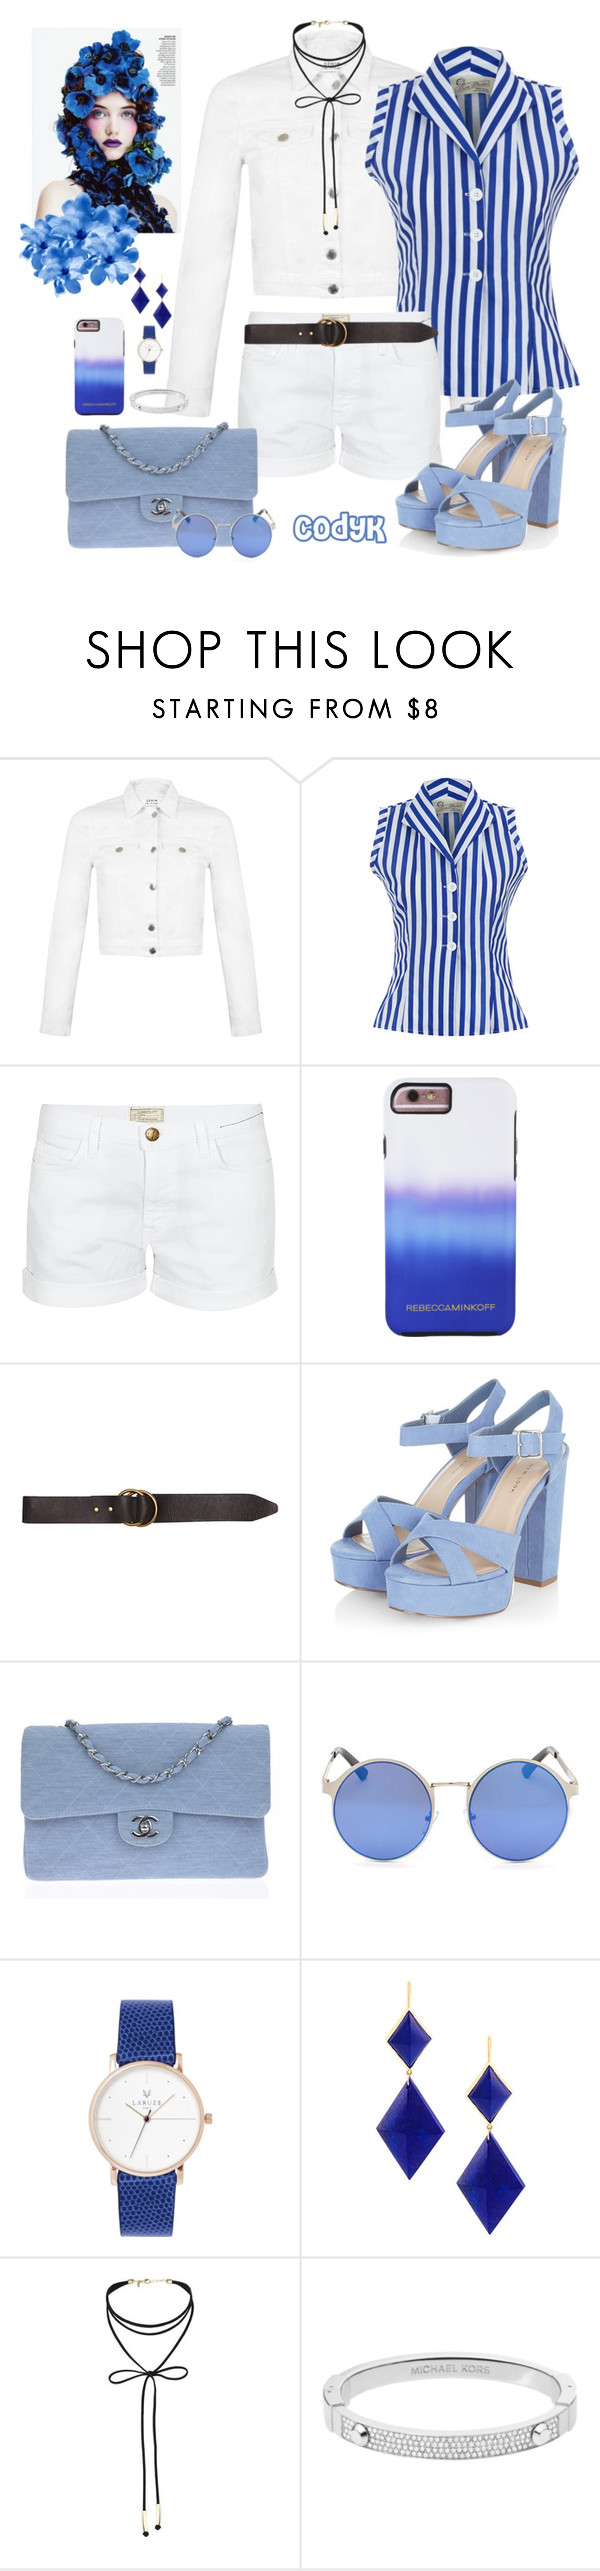 """Blue & White"" by cody-k ❤ liked on Polyvore featuring Miss Selfridge, Current/Elliott, Rebecca Minkoff, Billabong, Chanel, Marie Hélène de Taillac and Michael Kors"